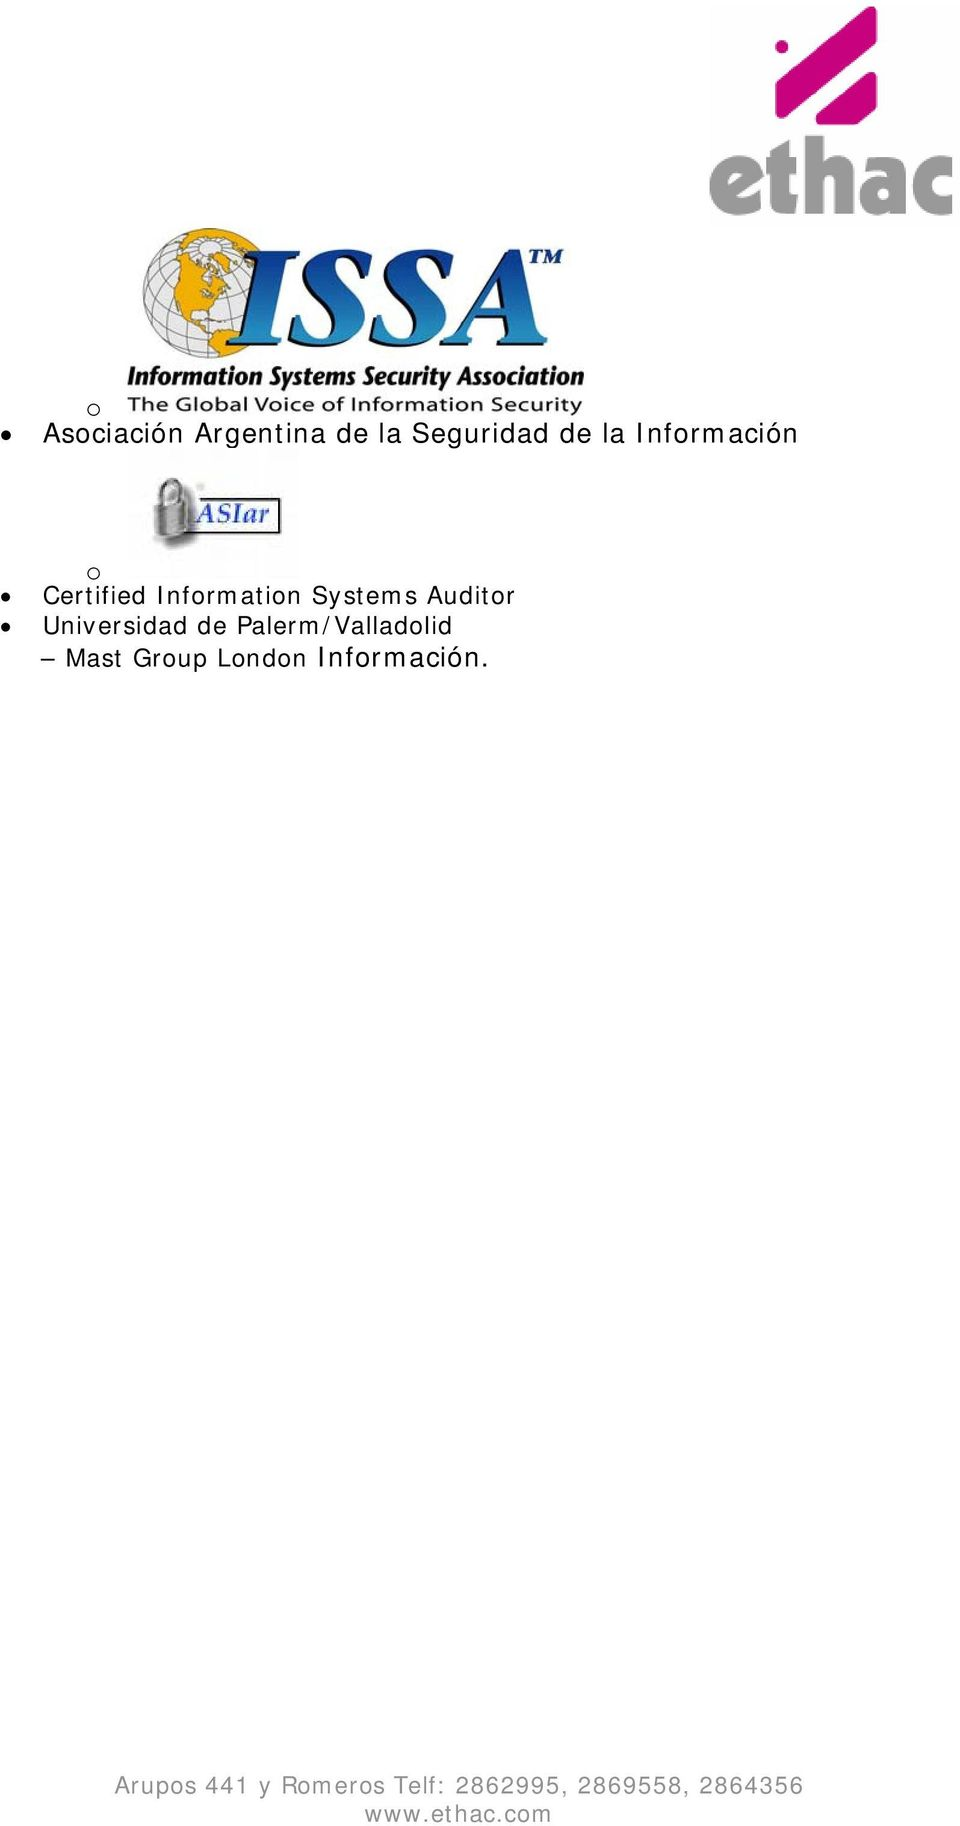 Information Systems Auditor Universidad